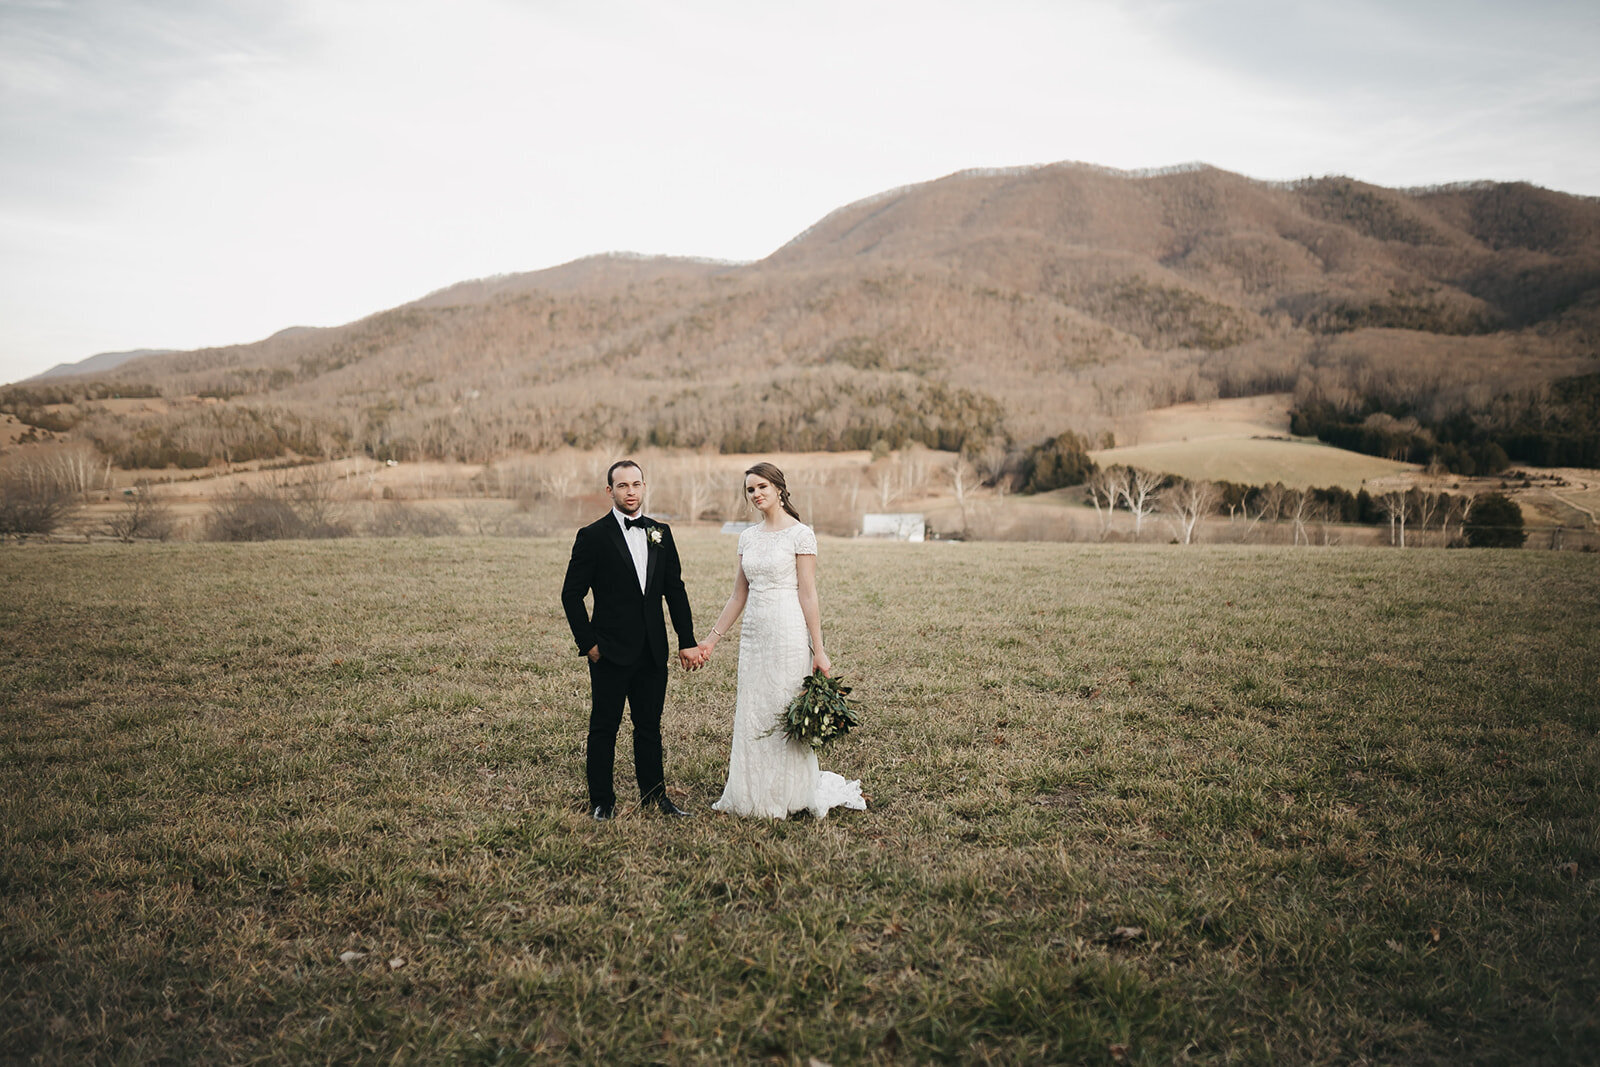 Jacob+NancyWeddingGallery-650